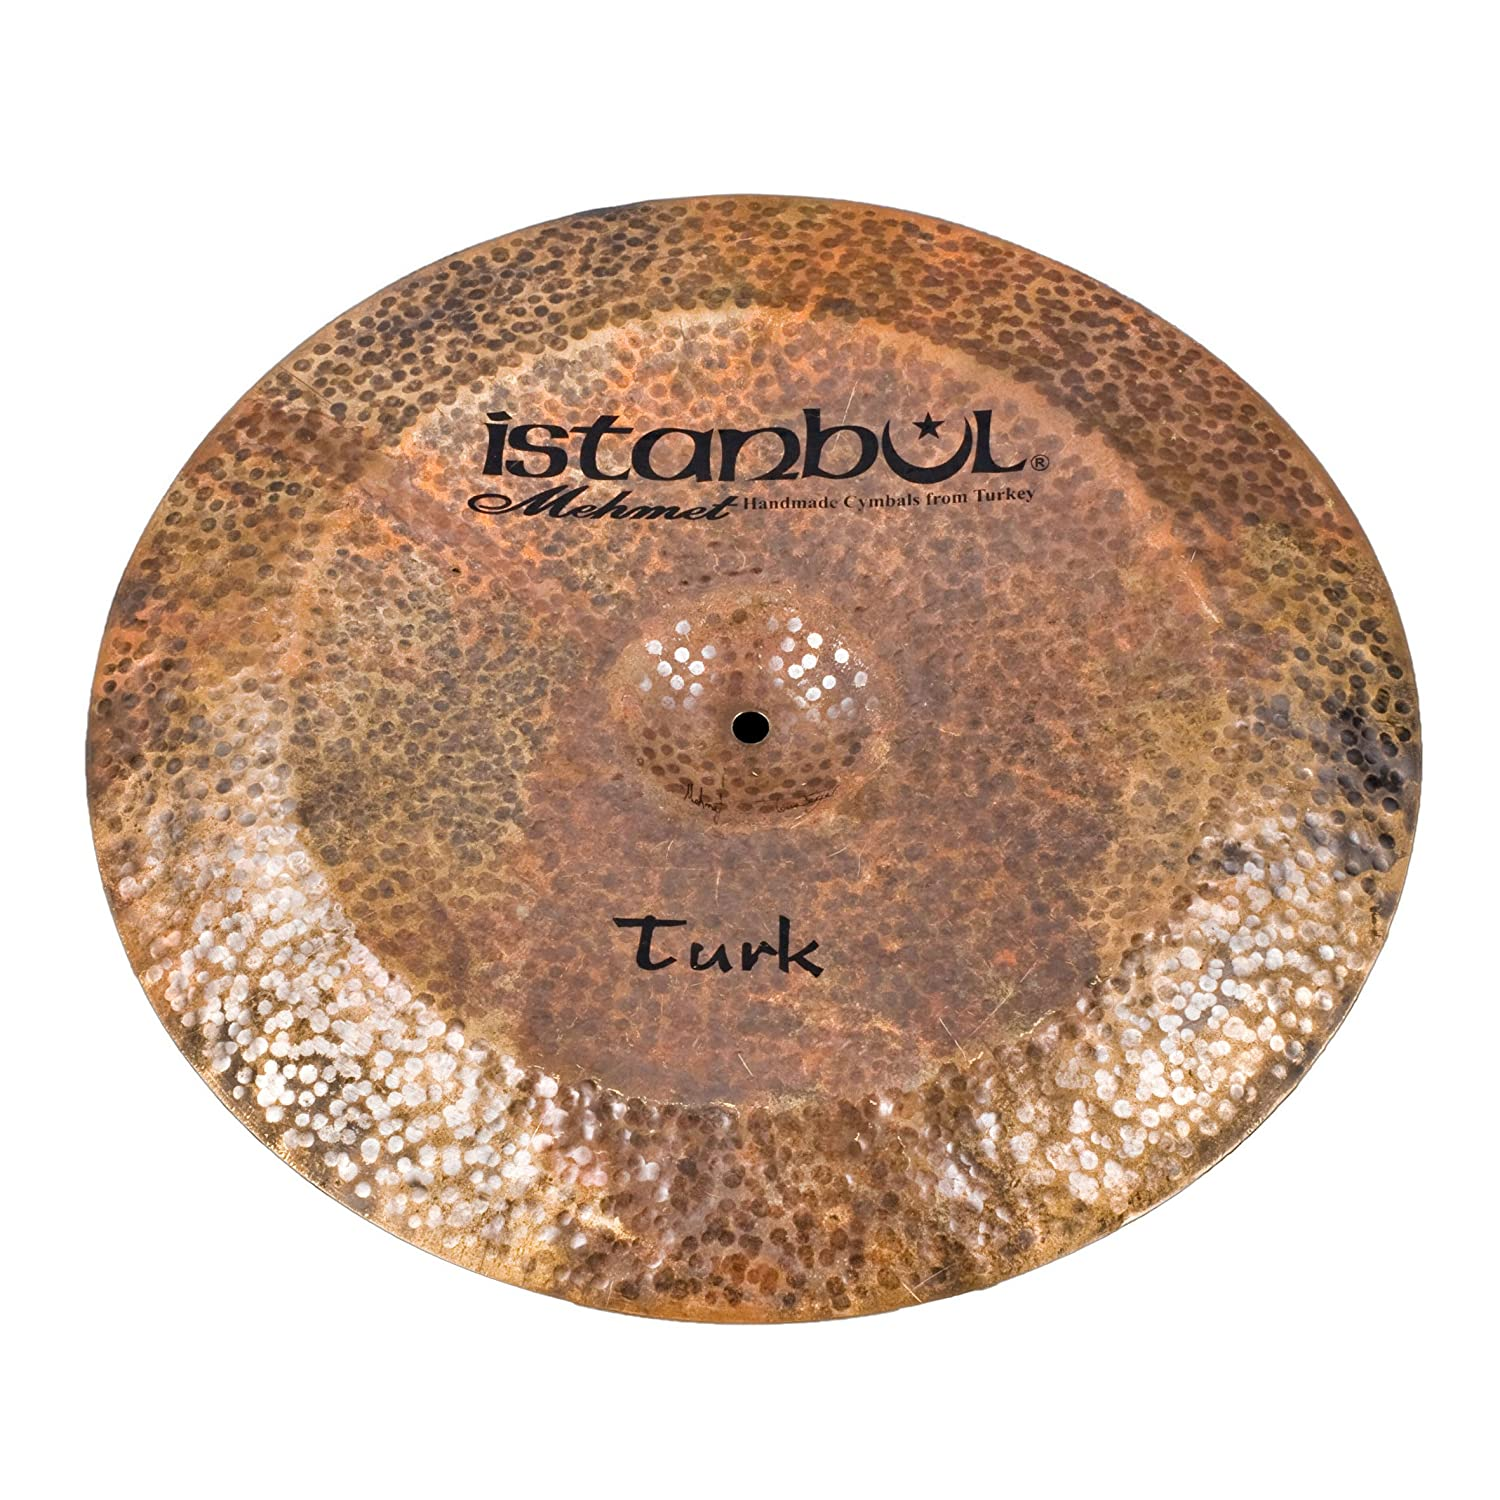 Istanbul Mehmet Cymbals Custom Series Turk China Cymbals CHT (17